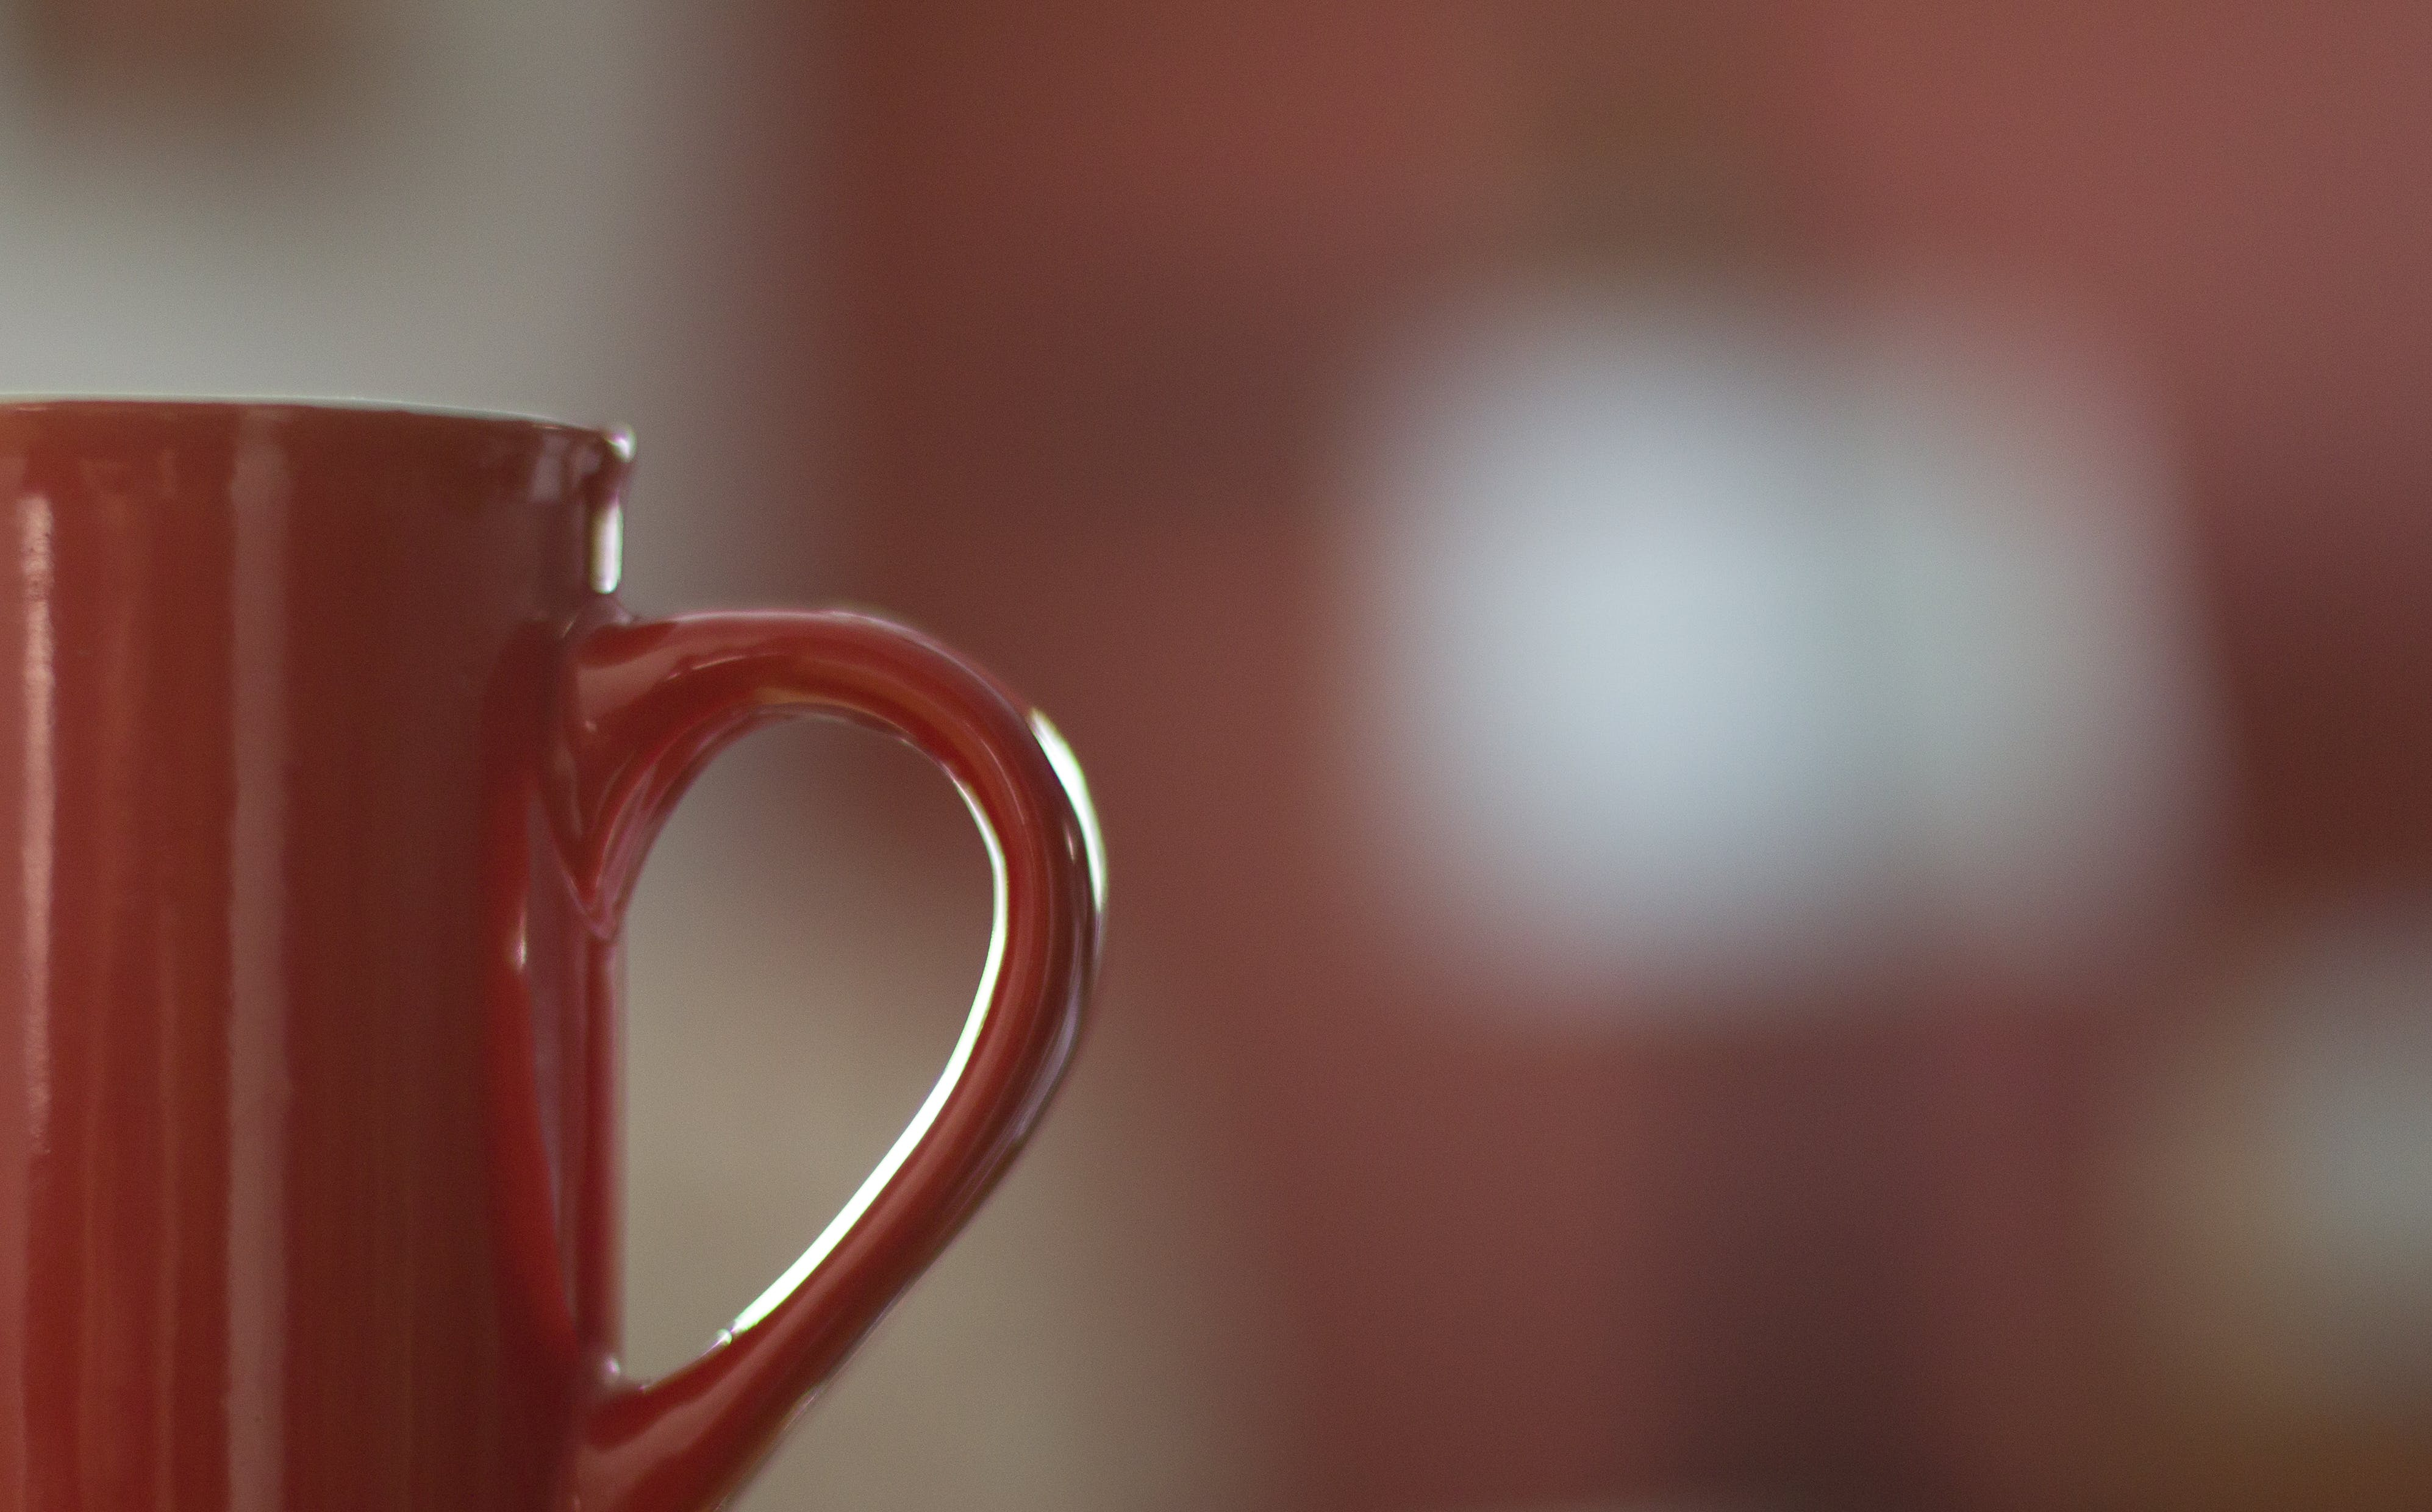 Free stock photo of blurred background, close-up, drink, mug handle